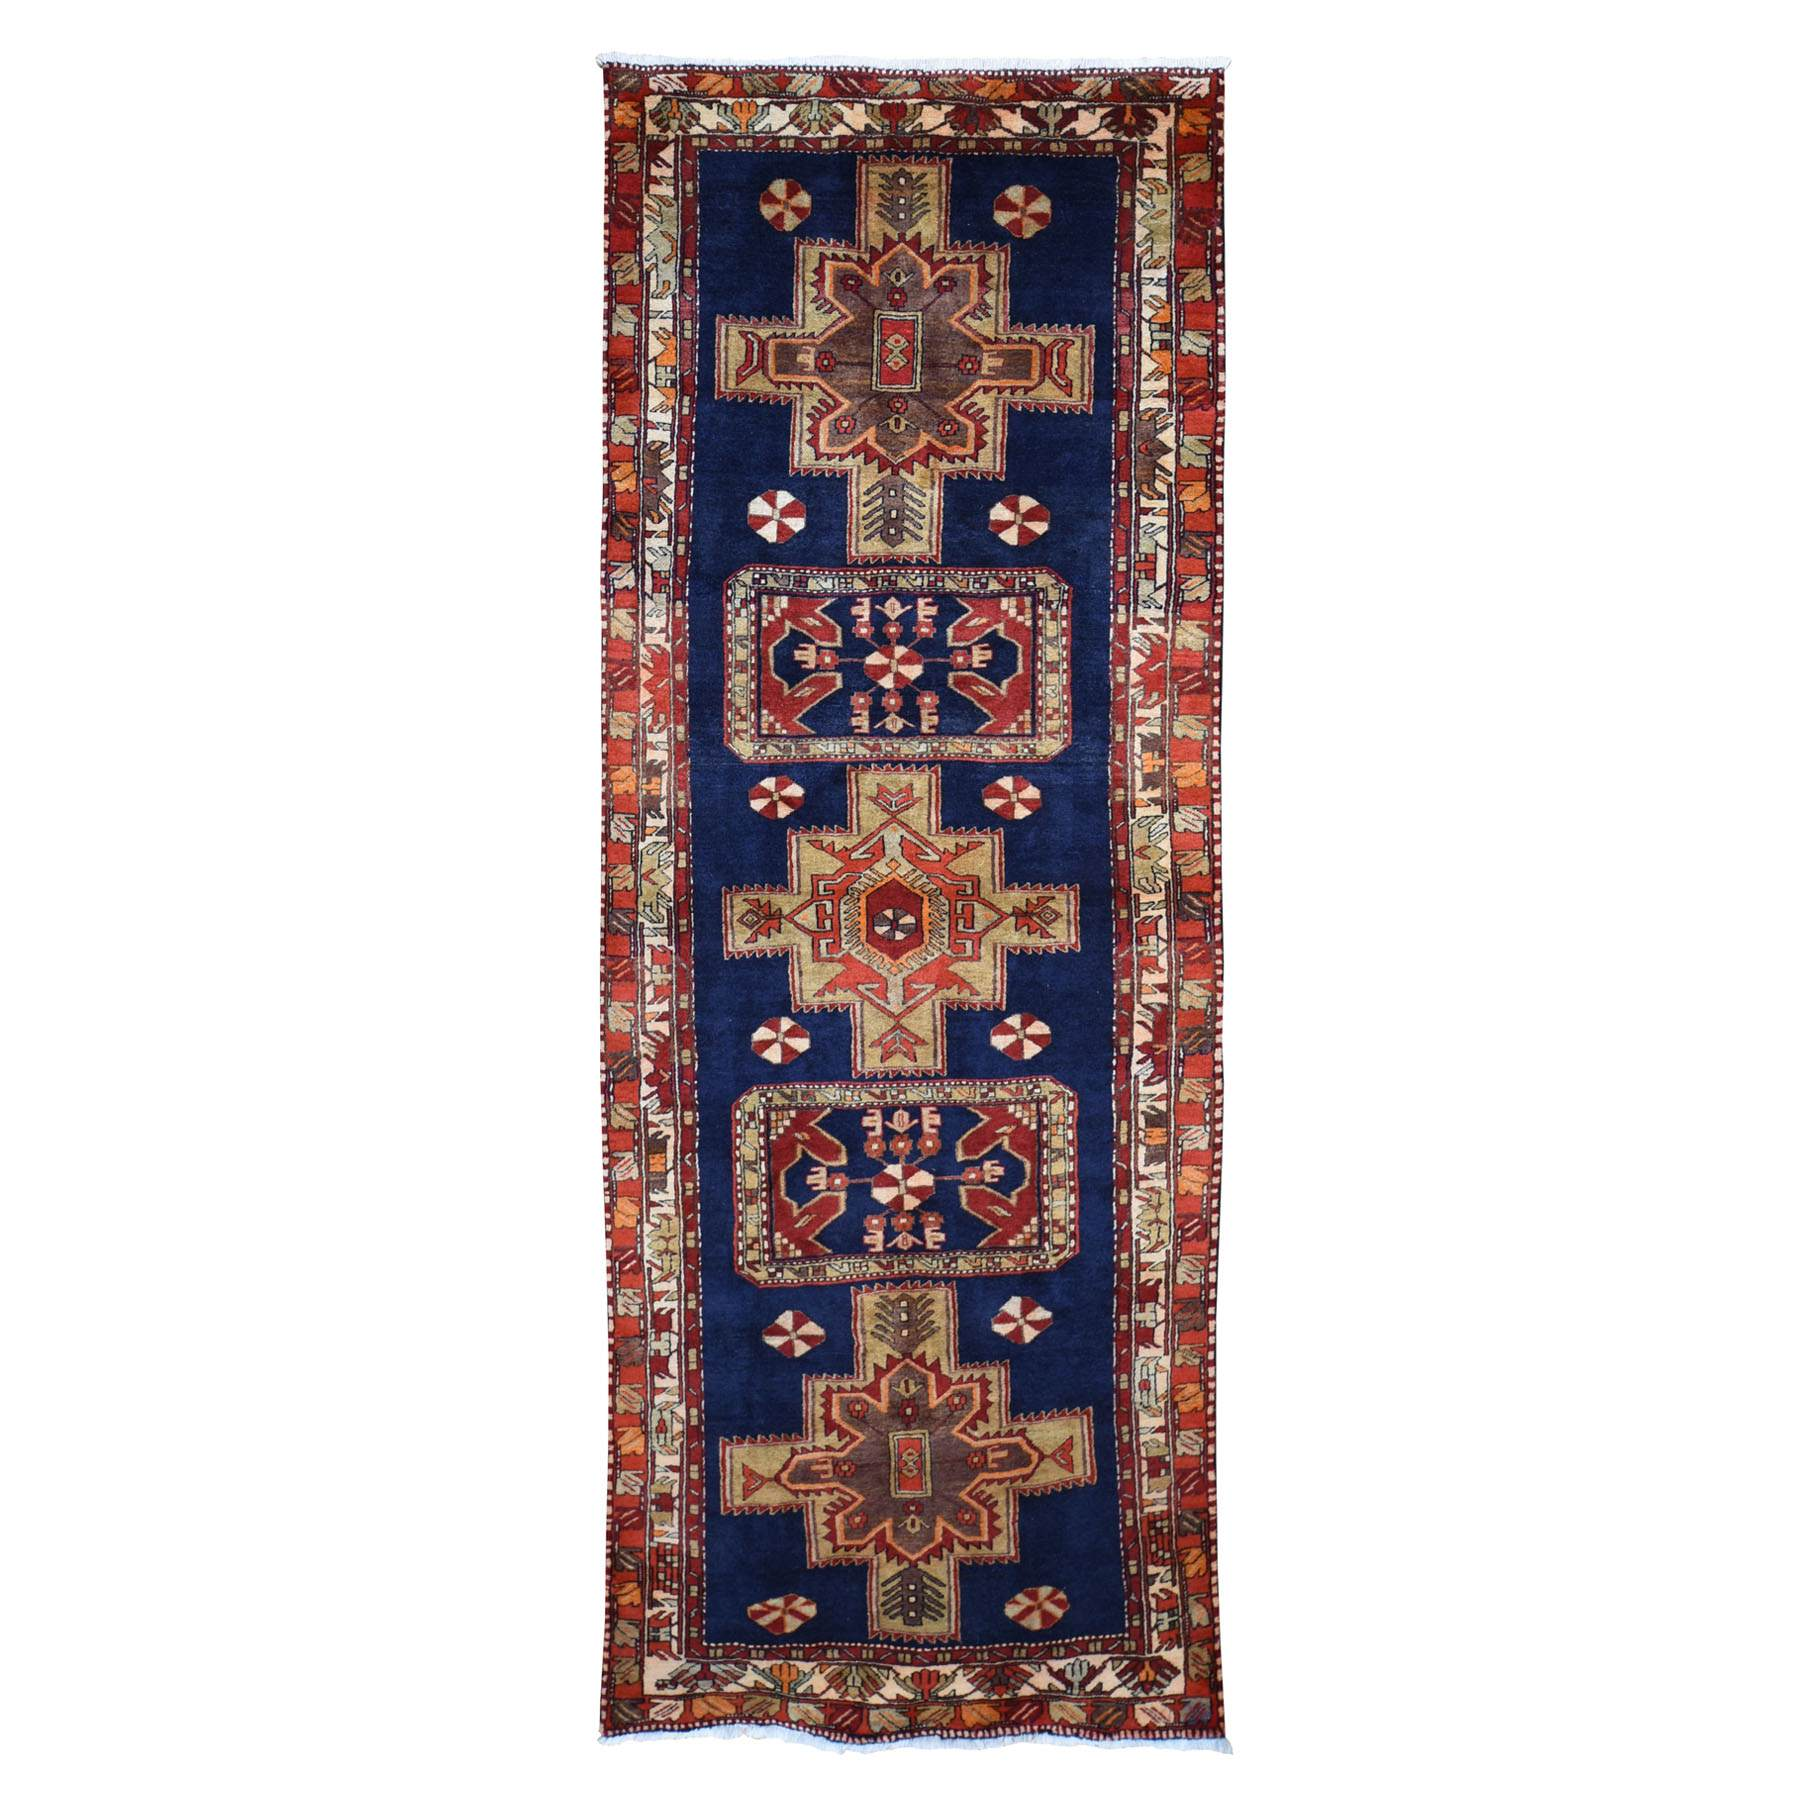 Persian-Hand-Knotted-Rug-240930